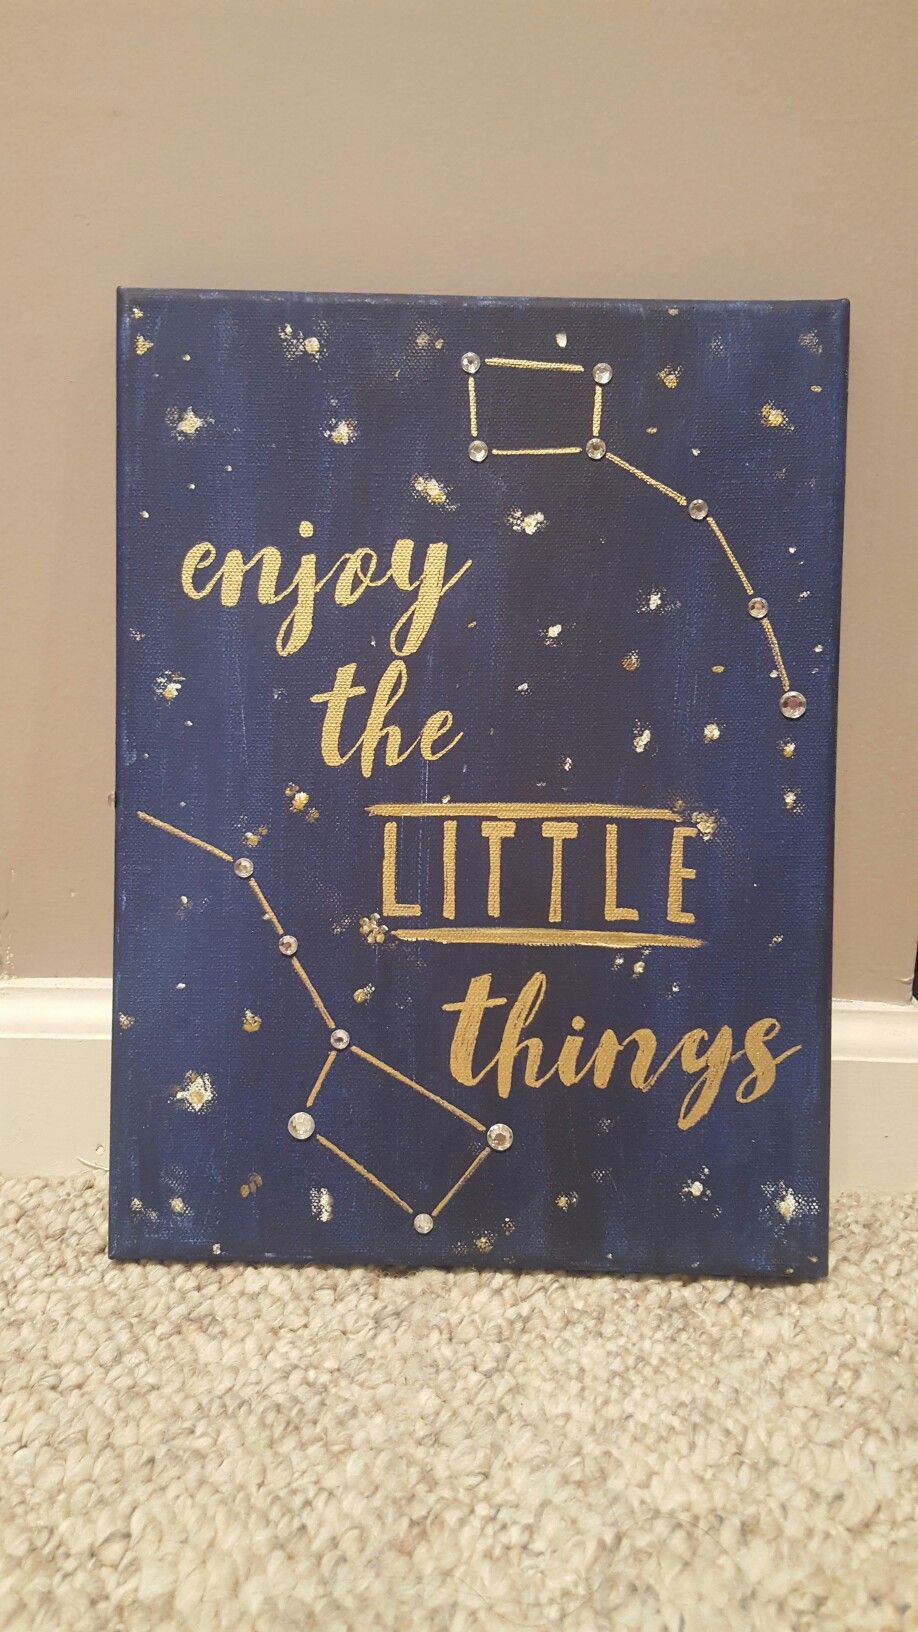 Enjoy the little things big/little constellation canvas  #biglittle #crafting #canvas #stars #sorority #biglittlecanvas